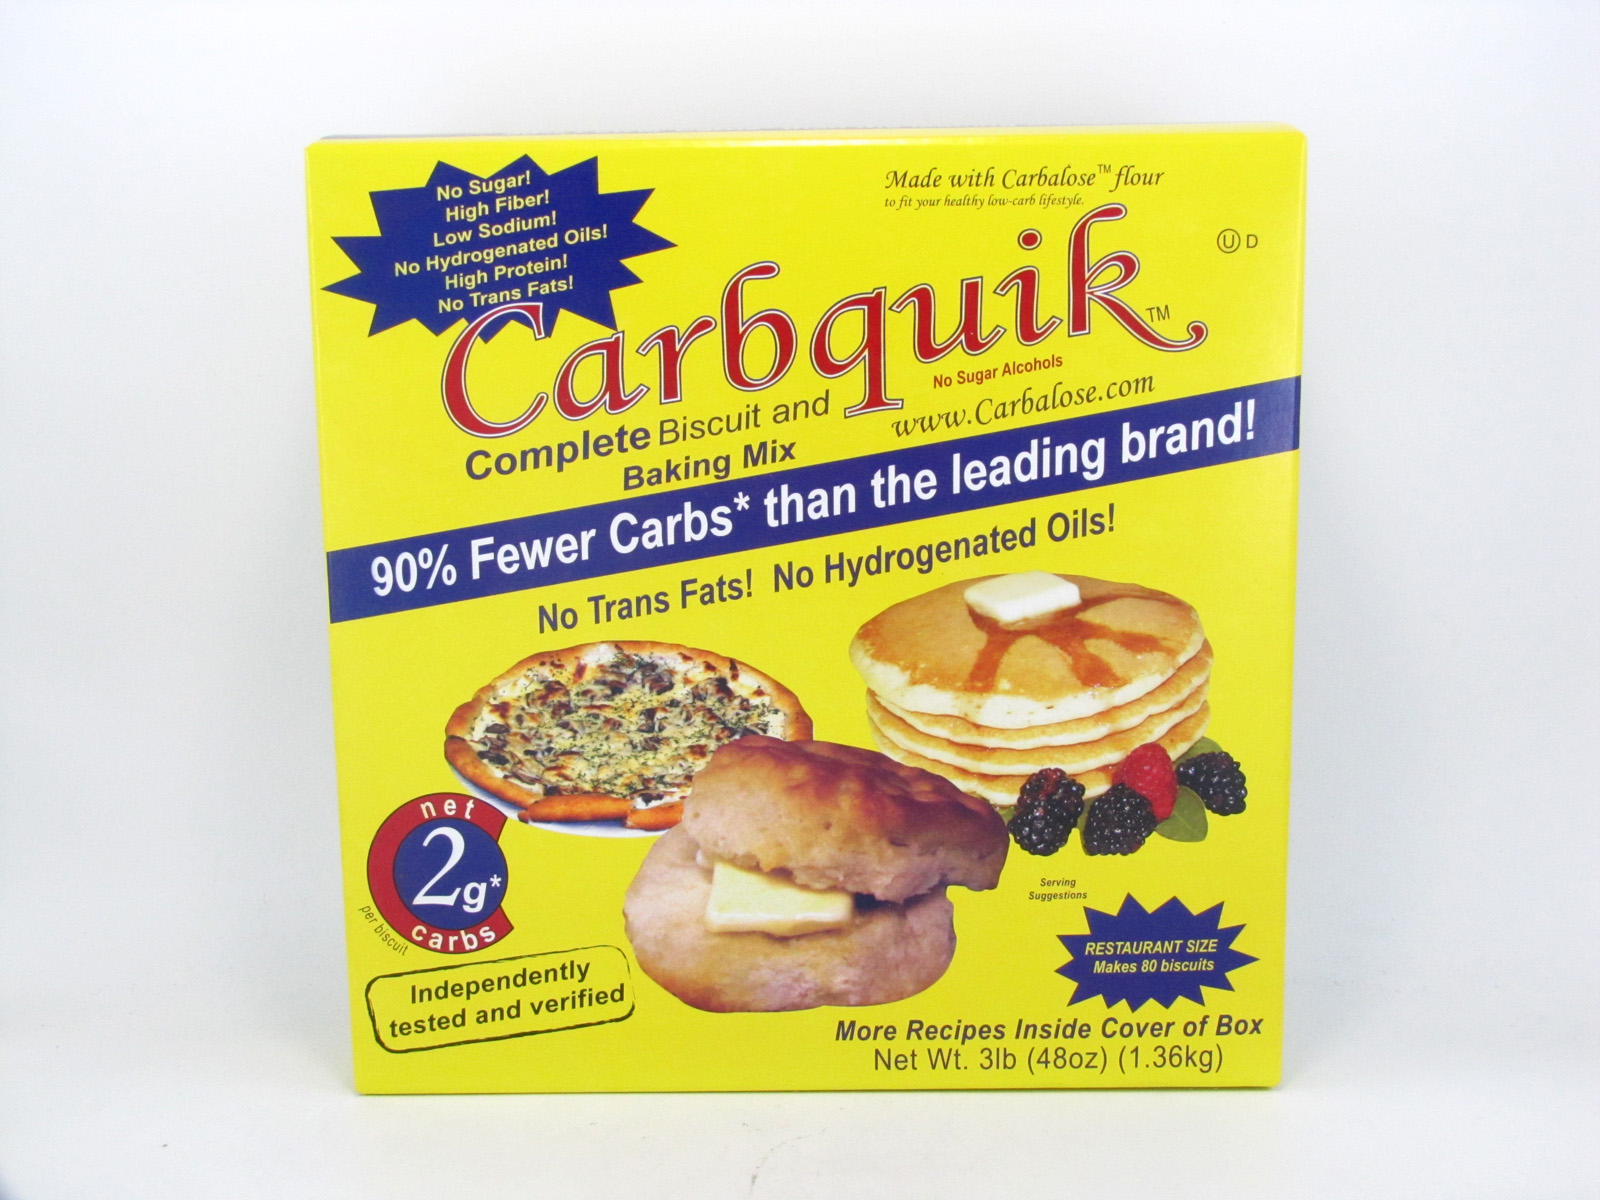 Carbquik - Complete Biscuit and Baking Mix - front view